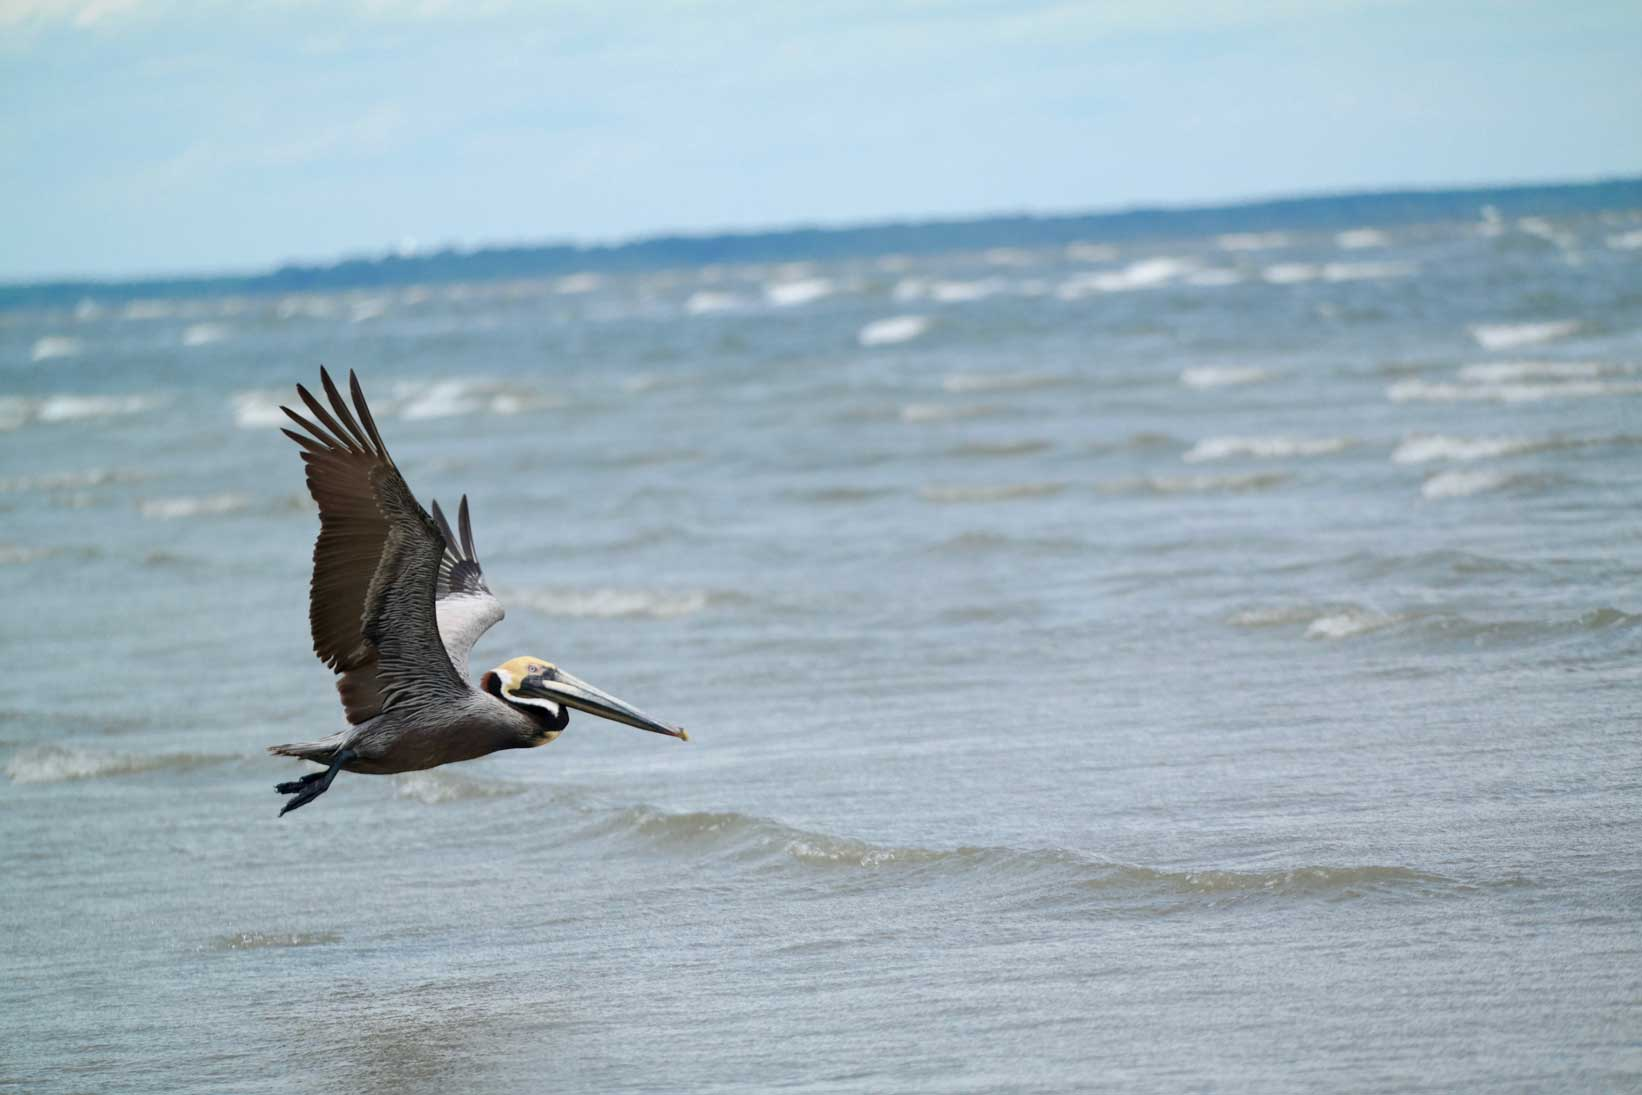 Pelican on a beach